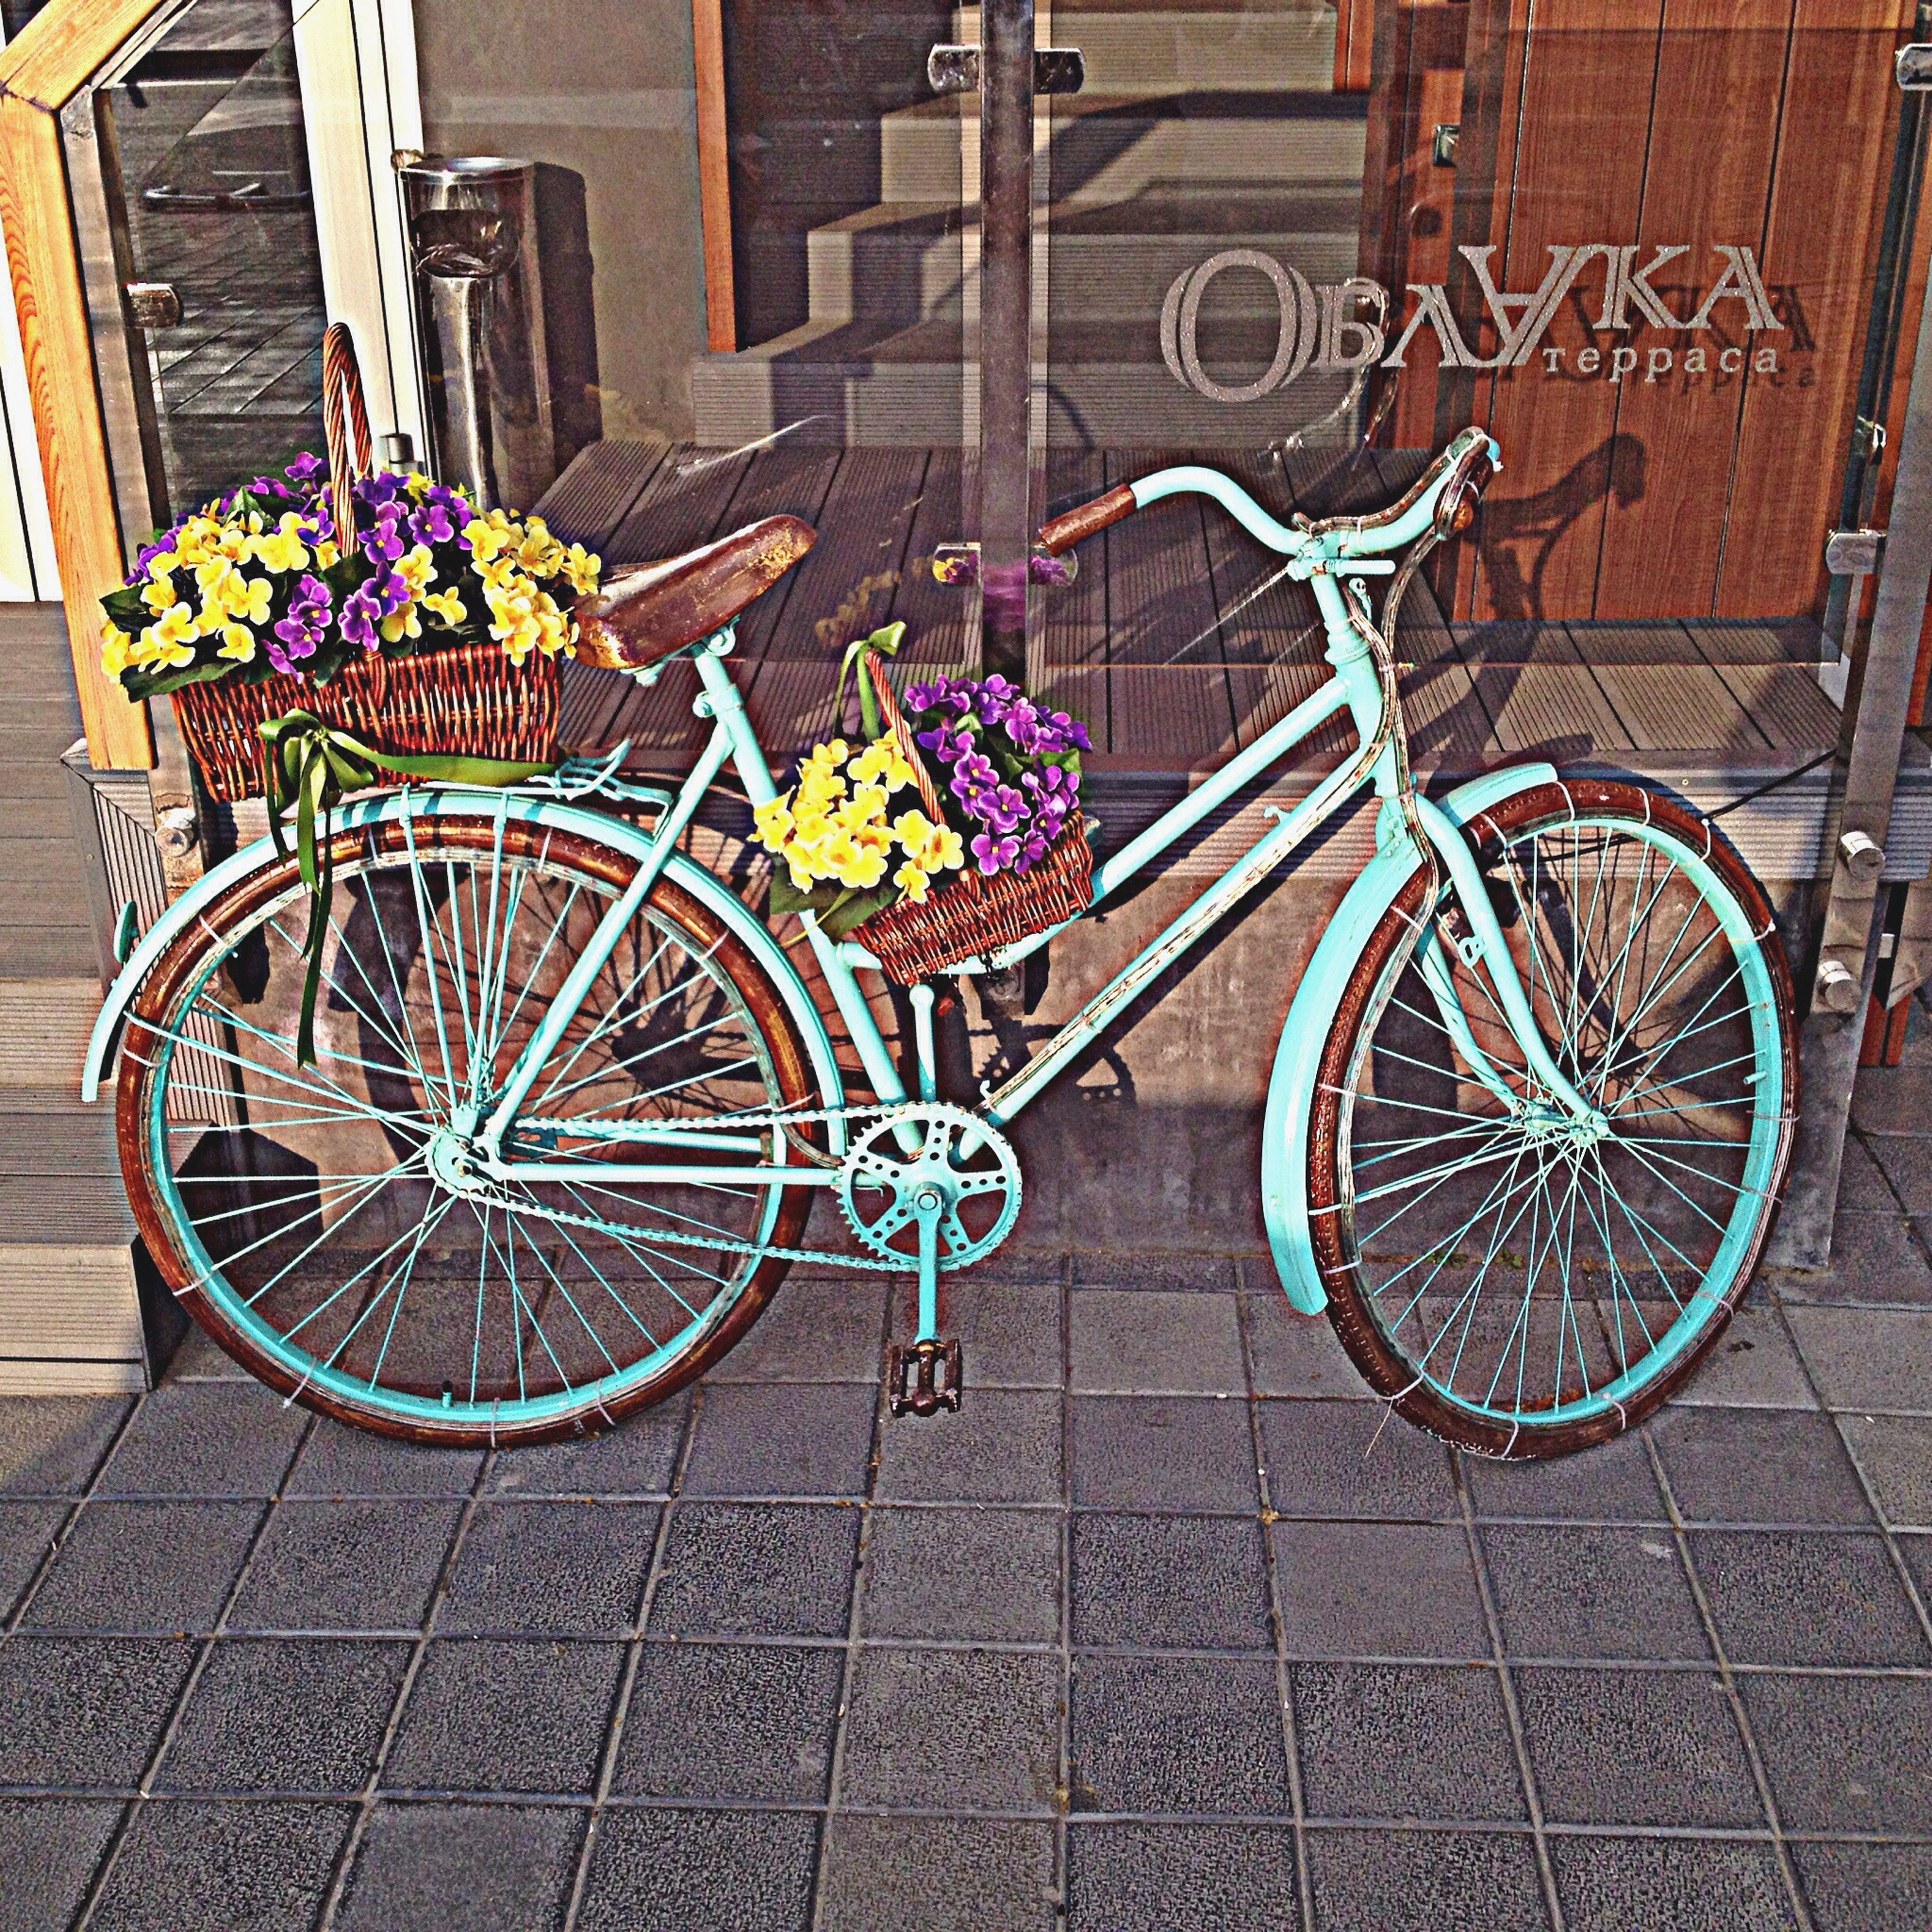 bicycle, flower, built structure, architecture, building exterior, sidewalk, wall - building feature, transportation, potted plant, multi colored, cobblestone, plant, parking, paving stone, stationary, no people, day, street, outdoors, mode of transport